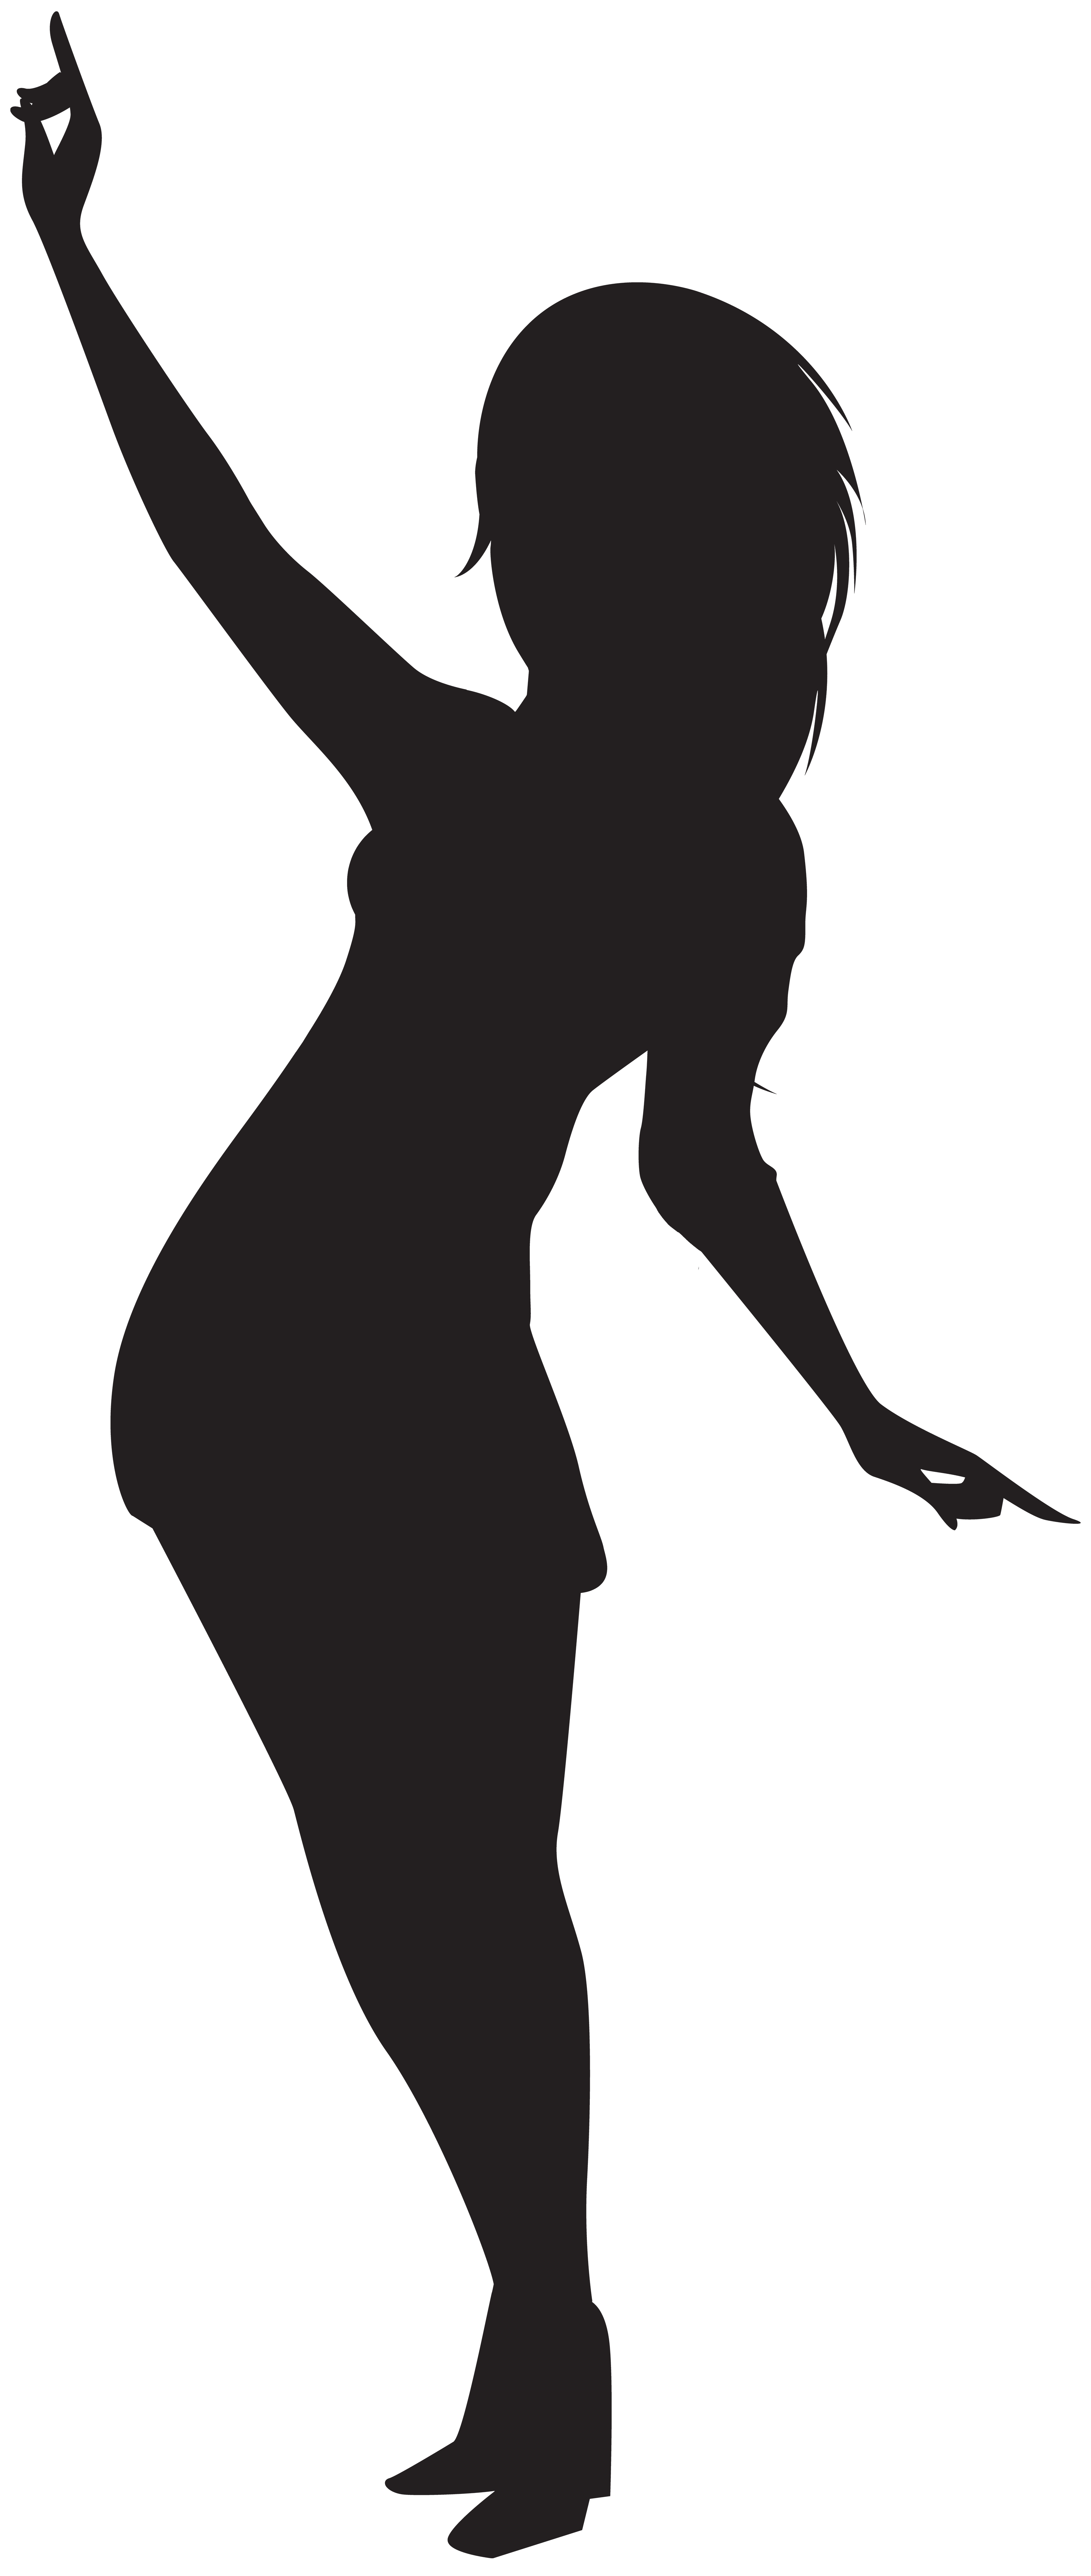 Dancing star clipart svg library download Dancing Girl Silhouette PNG Clip Art | Gallery Yopriceville - High ... svg library download